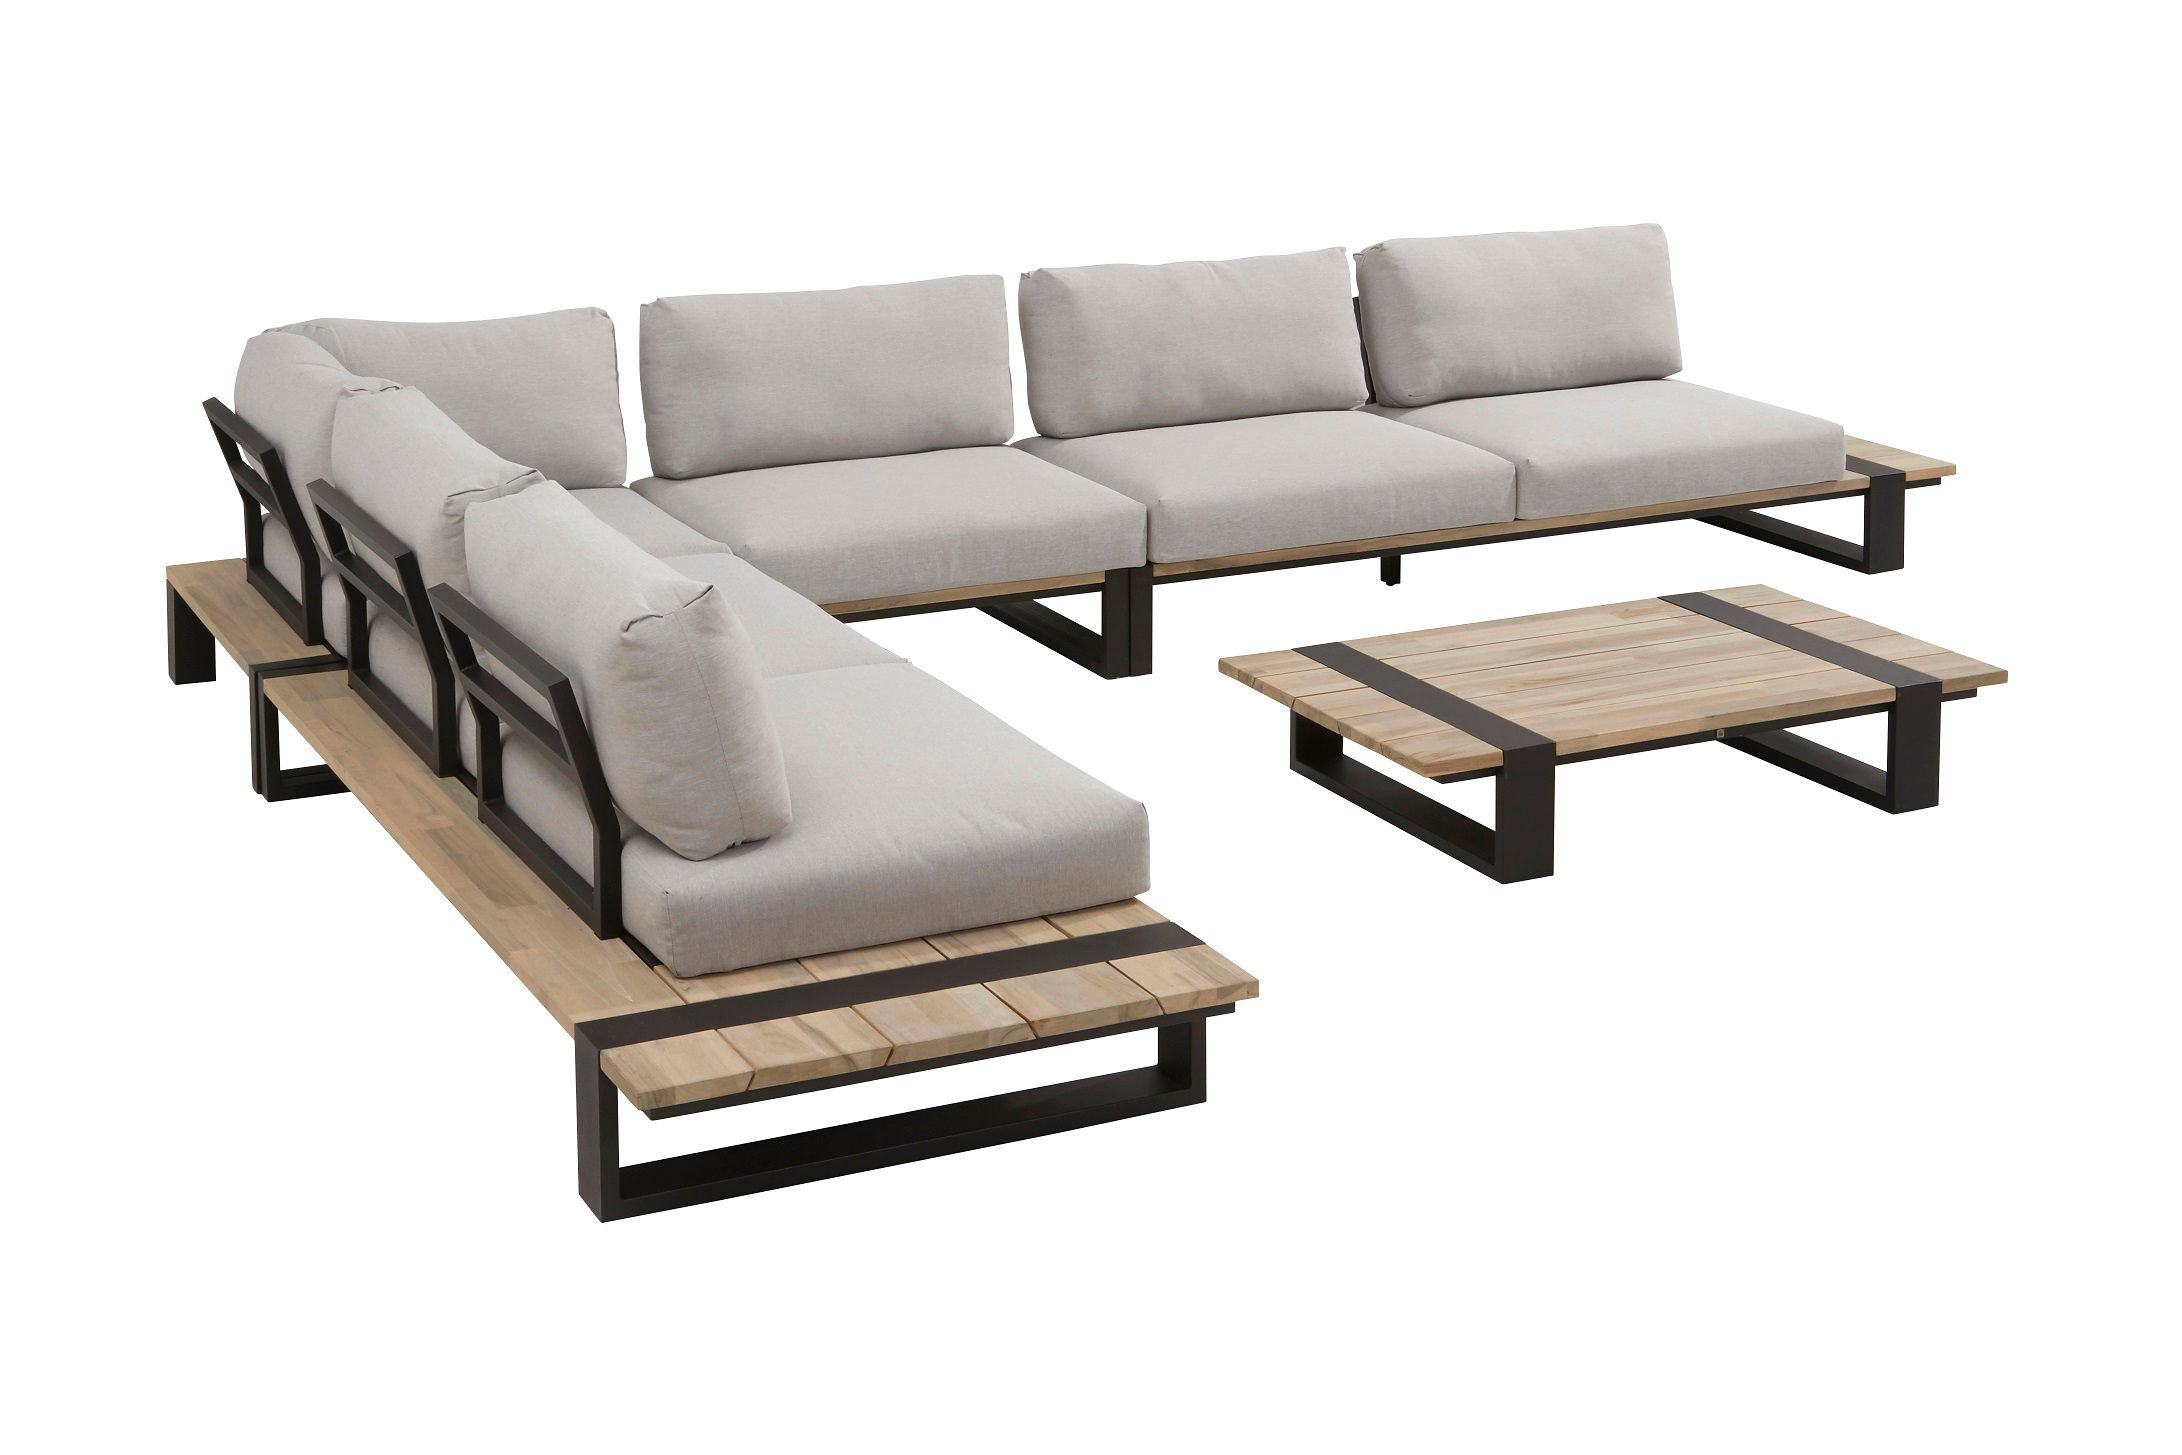 Image of 4 Seasons Outdoor Duke Luxury Corner Set